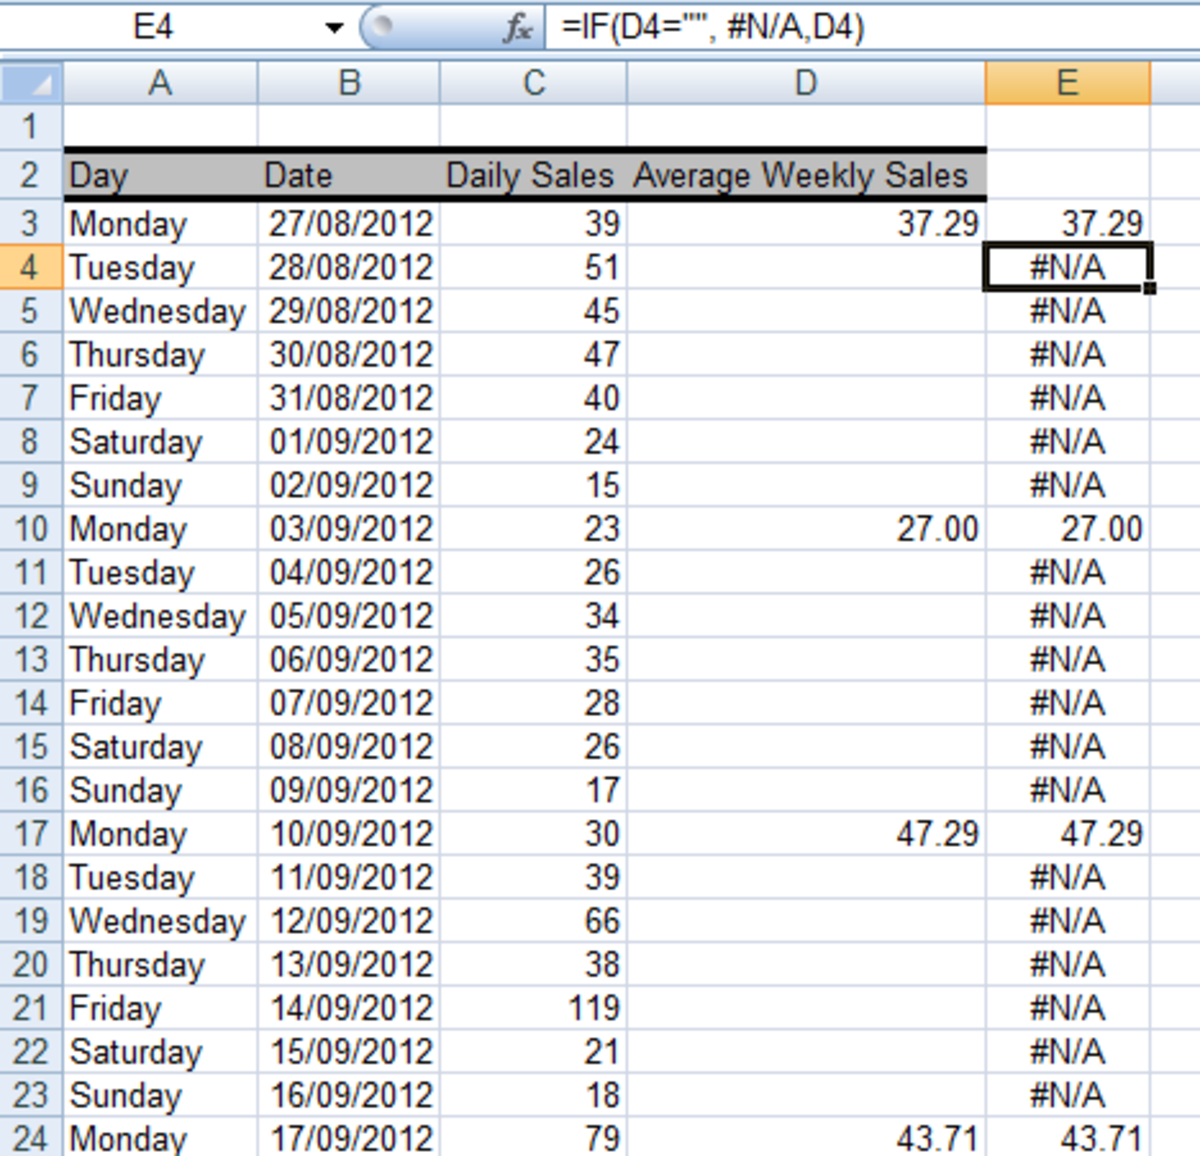 Ediblewildsus  Fascinating How To Get Excel  And  To Ignore Empty Cells In A Chart Or  With Luxury Using The If Function In A Formula To Convert Empty Cells To Na With Agreeable Excel Commands Also Citation Excel In Addition Delete Extra Rows In Excel And Pie Chart Excel As Well As How To Unhide All Rows In Excel Additionally Excel Rank Function From Turbofuturecom With Ediblewildsus  Luxury How To Get Excel  And  To Ignore Empty Cells In A Chart Or  With Agreeable Using The If Function In A Formula To Convert Empty Cells To Na And Fascinating Excel Commands Also Citation Excel In Addition Delete Extra Rows In Excel From Turbofuturecom